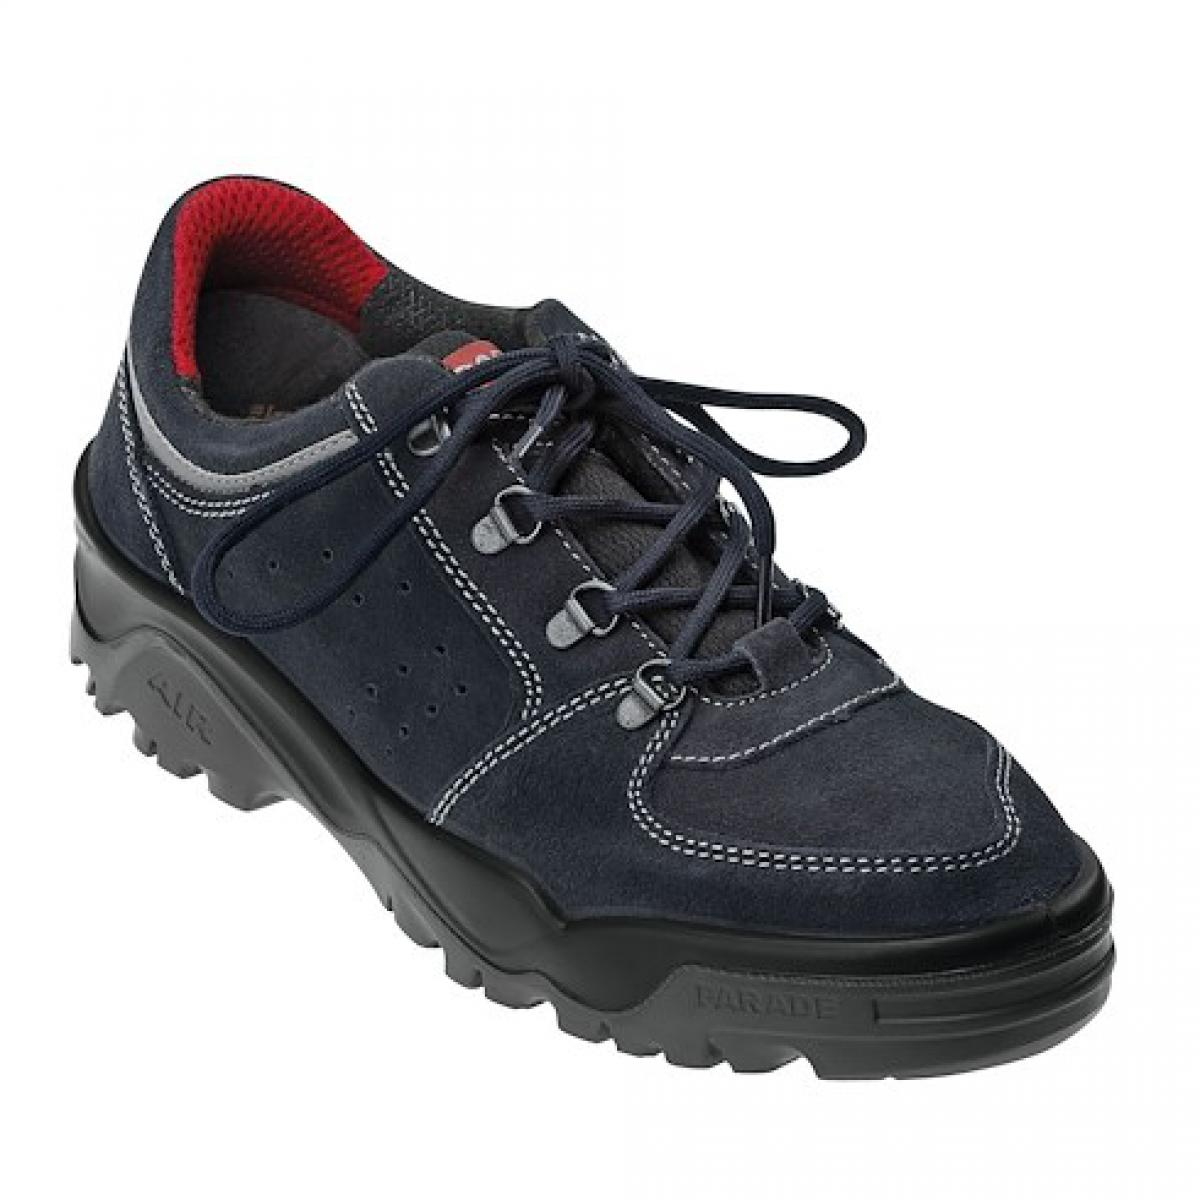 Parade Chaussure Doxo taille 42